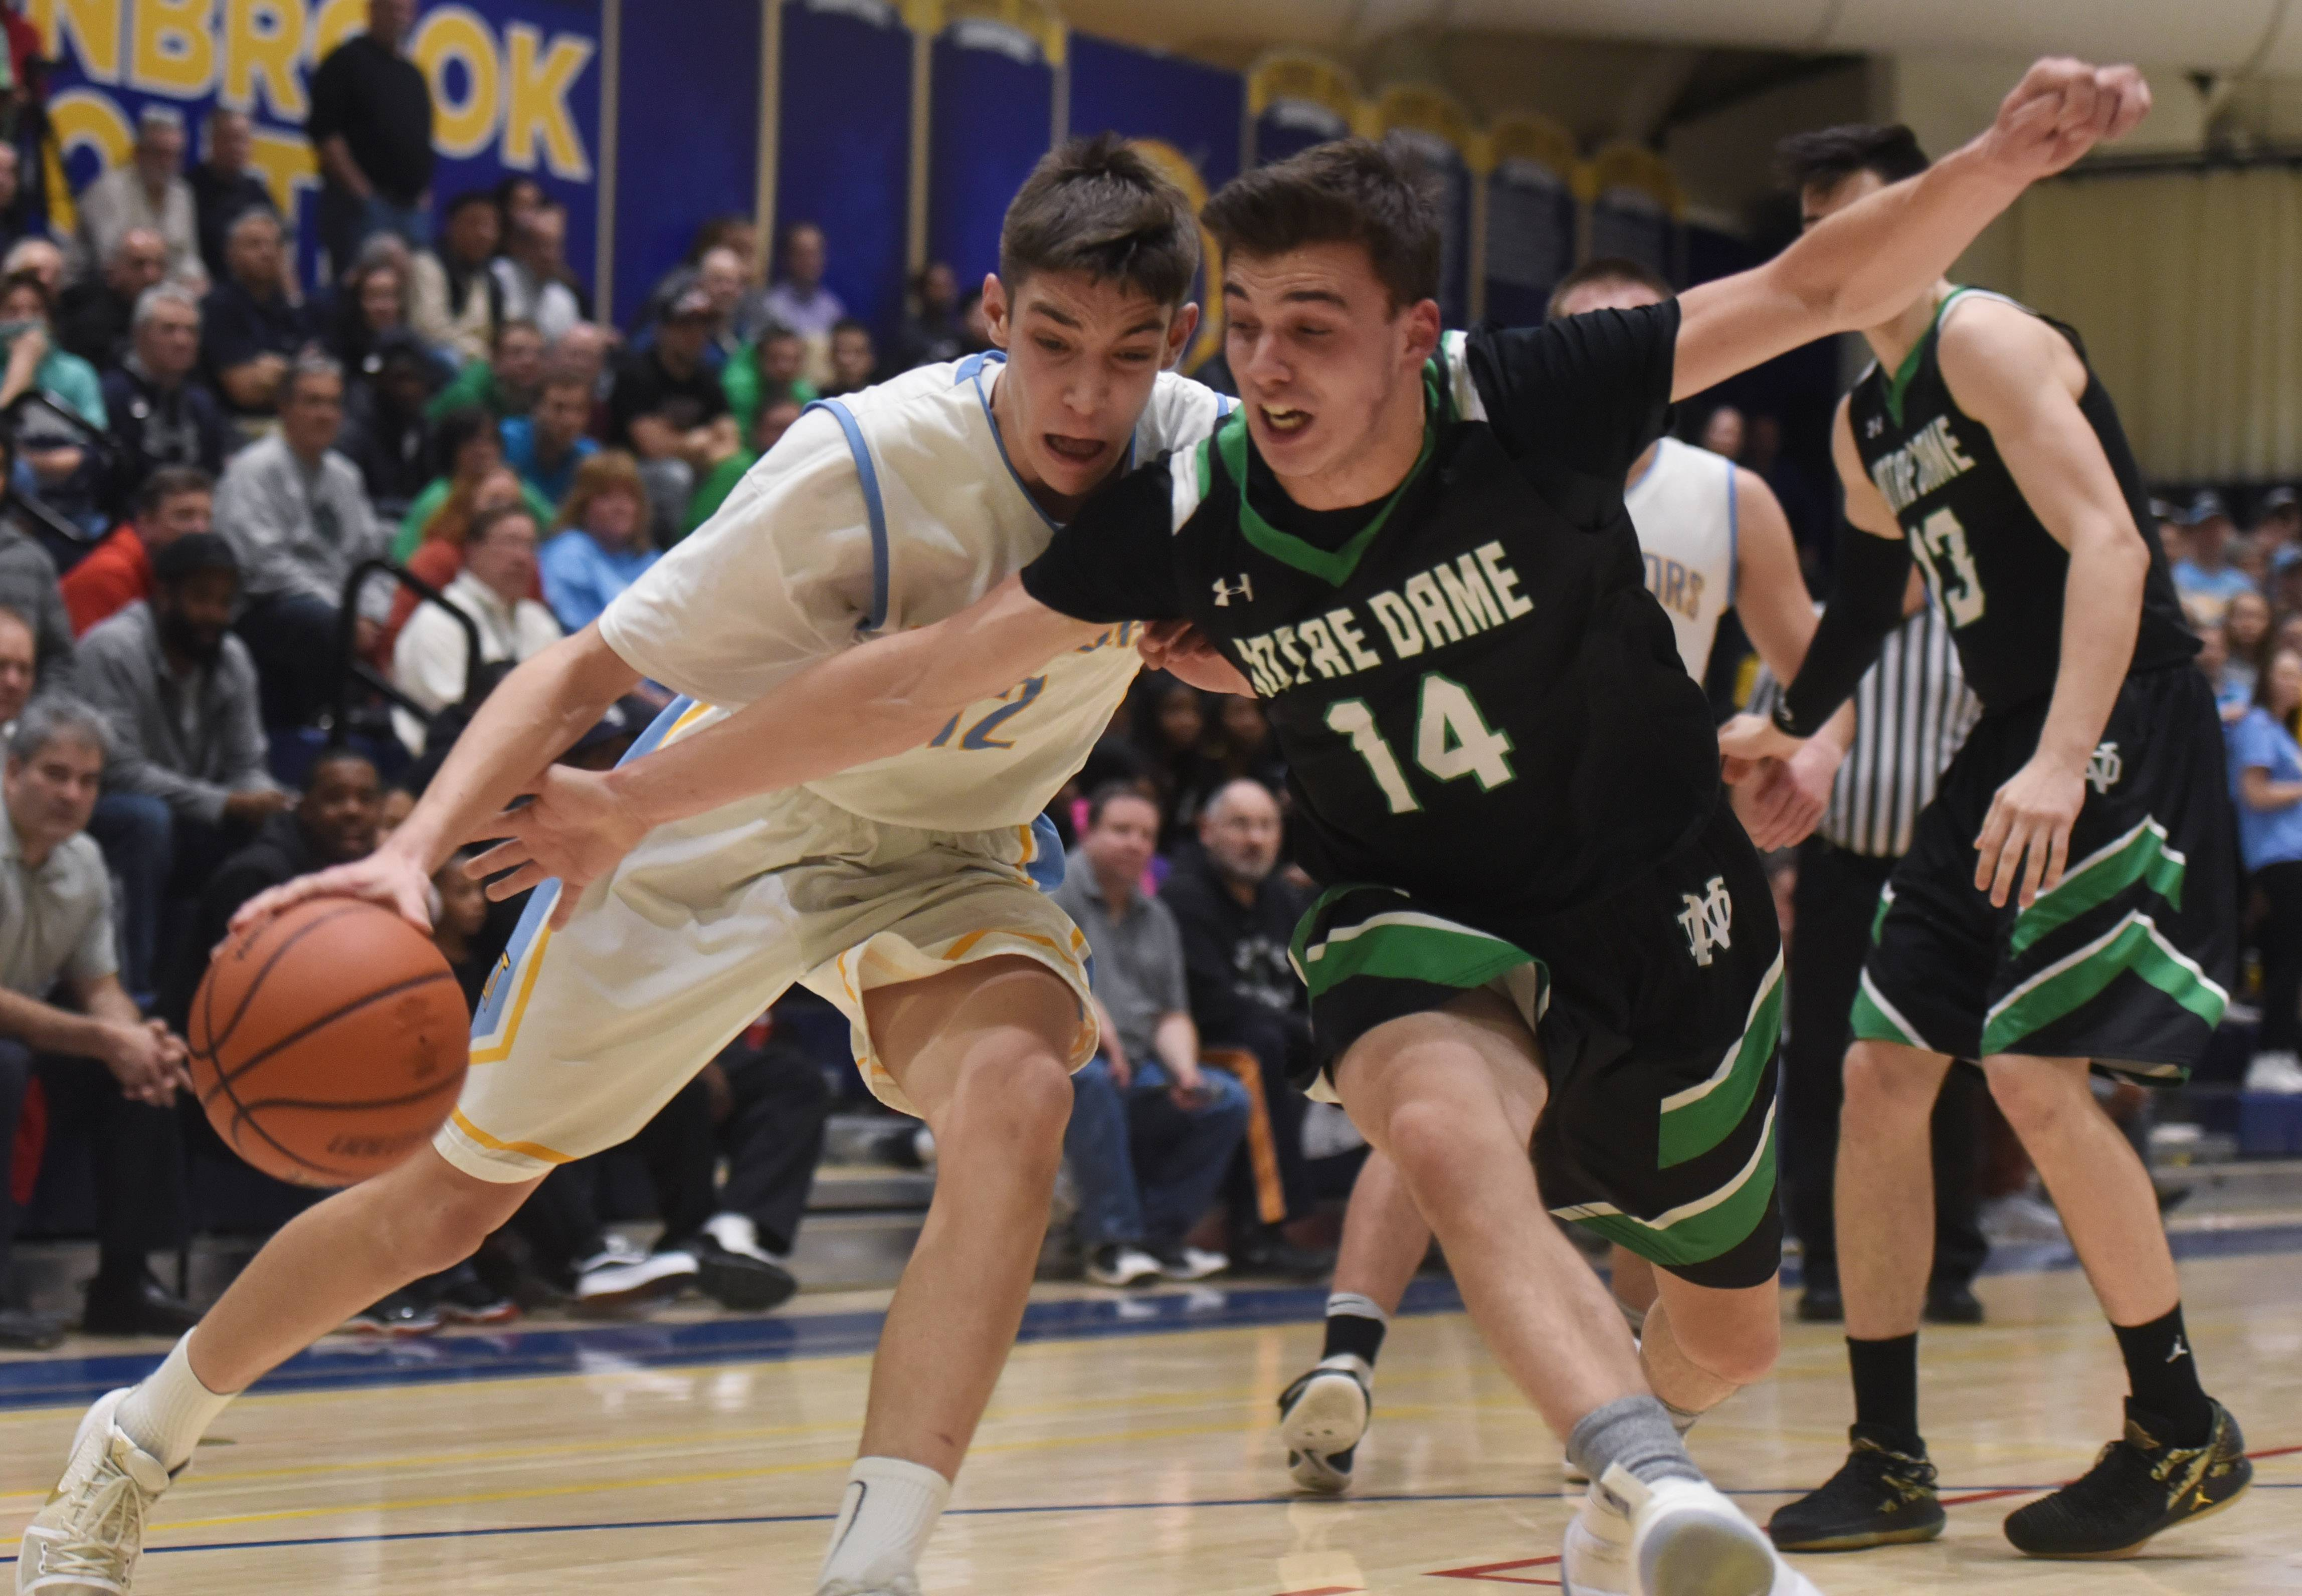 The ball goes off the hand of Maine West's Milos Dugalic and out of bounds as Notre Dame's Adi Tagani defends during the Glenbrook South regional semifinal in Glenview on Tuesday.